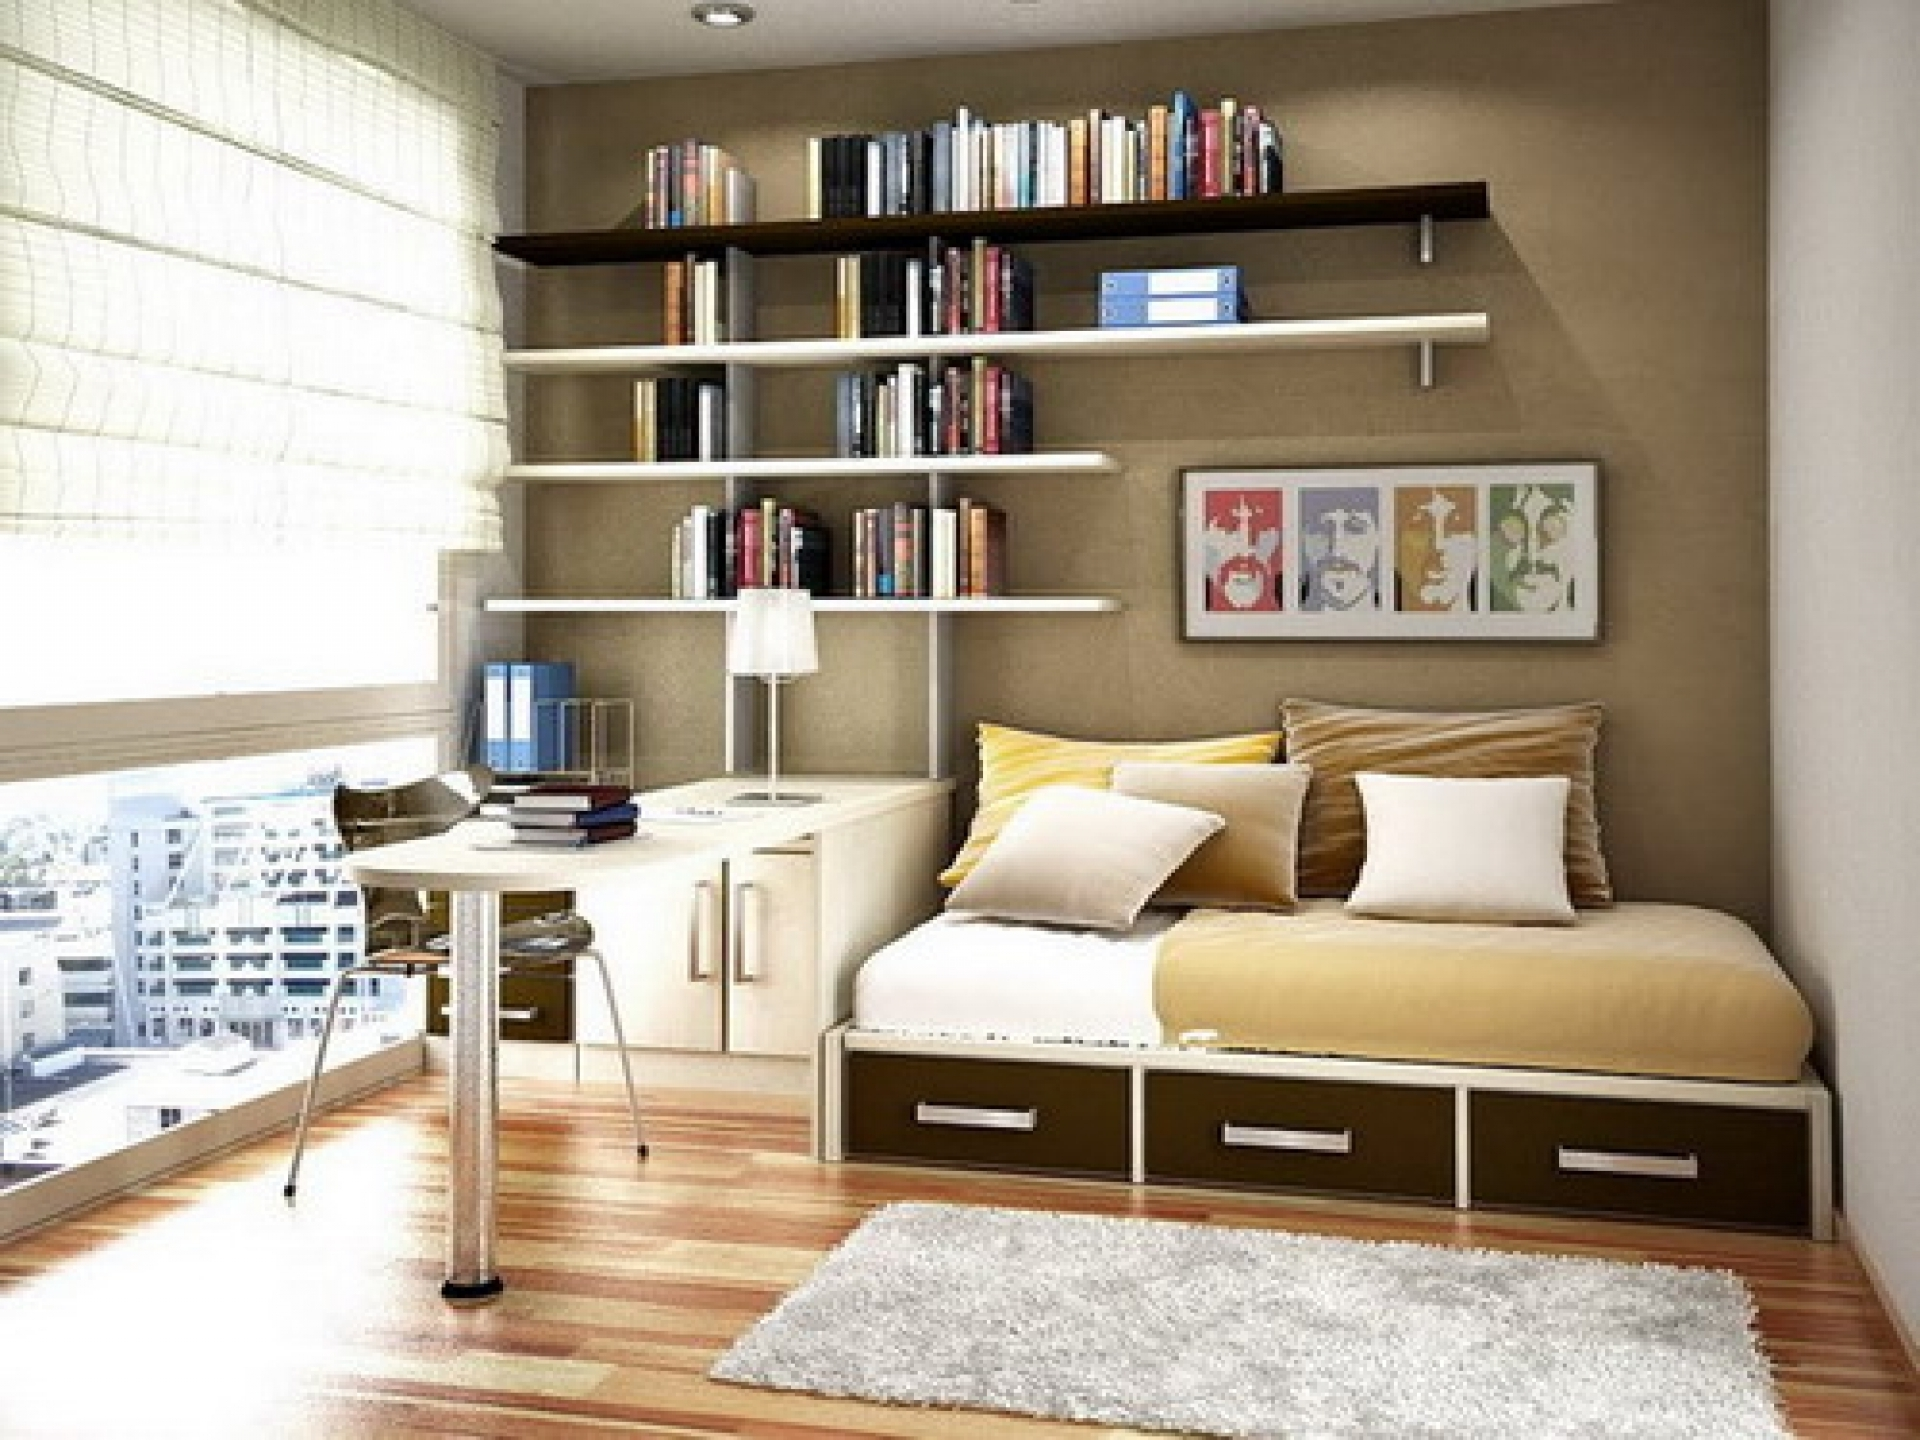 Modish Floating Bookshelves Over Sleeper Couch Storage And For Newest Study Bookshelves (View 10 of 15)